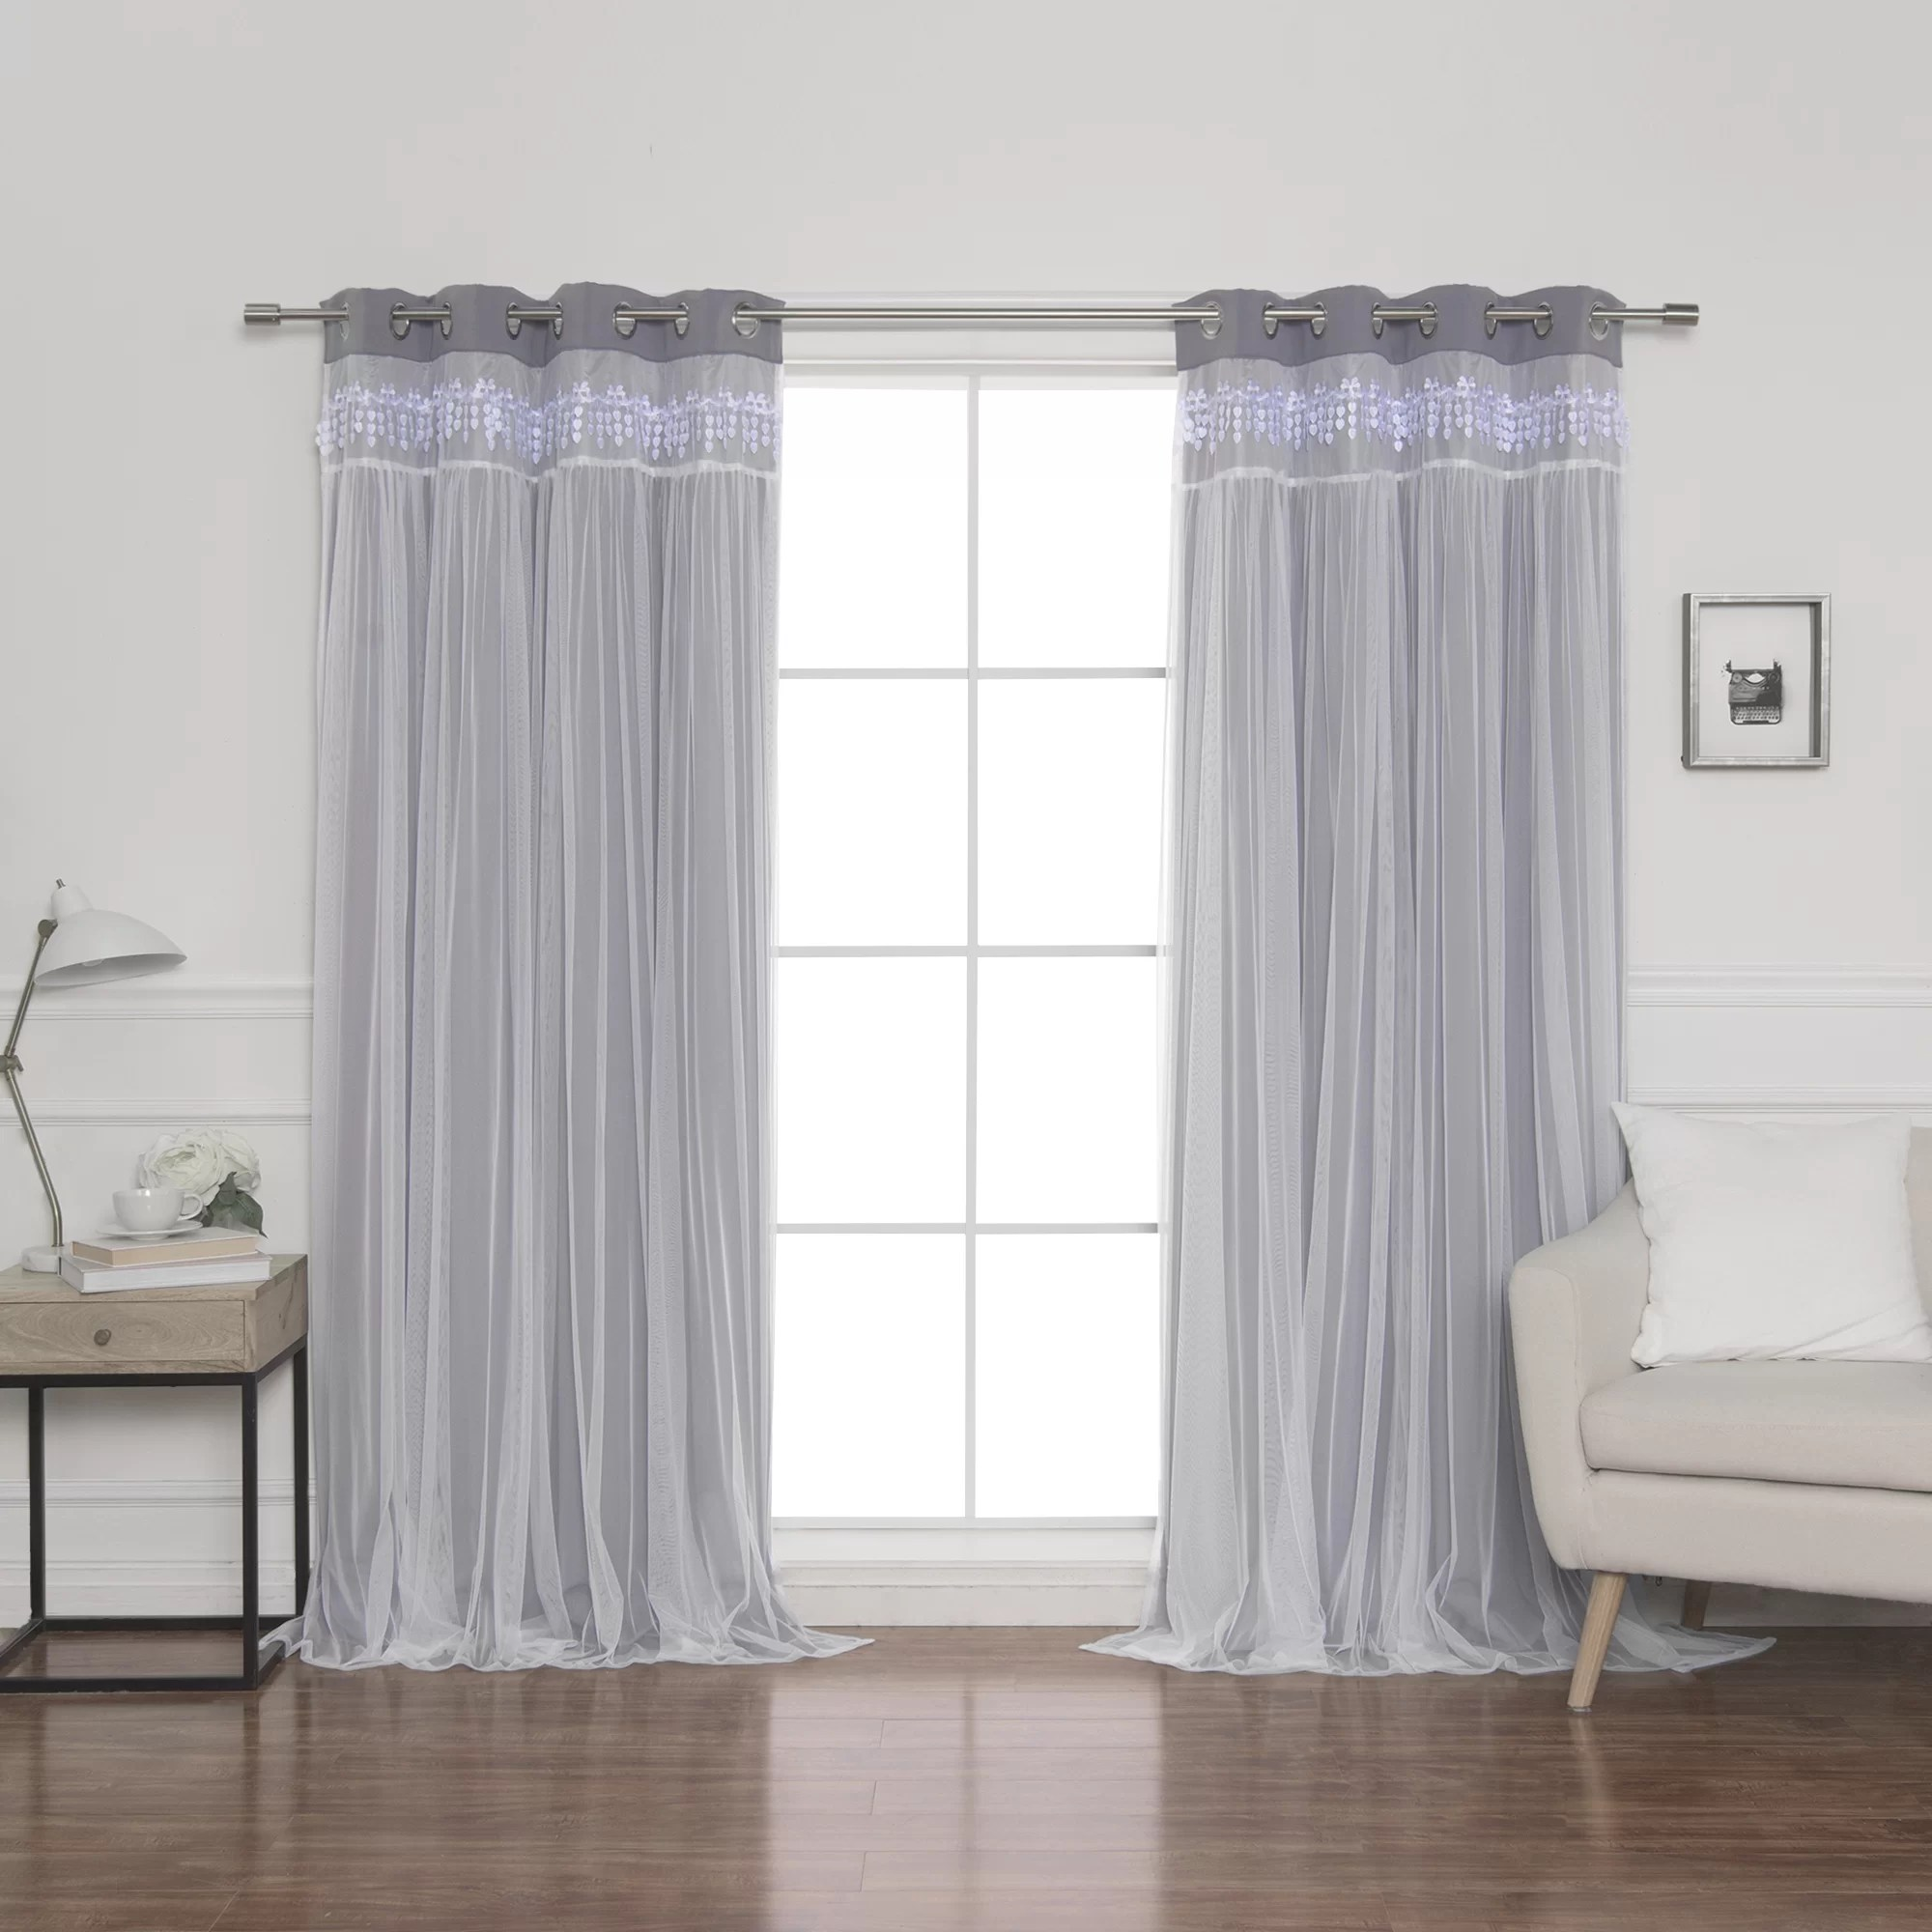 Heavy Thermal Curtains Loar Solid Blackout Thermal Grommet Curtain Panels